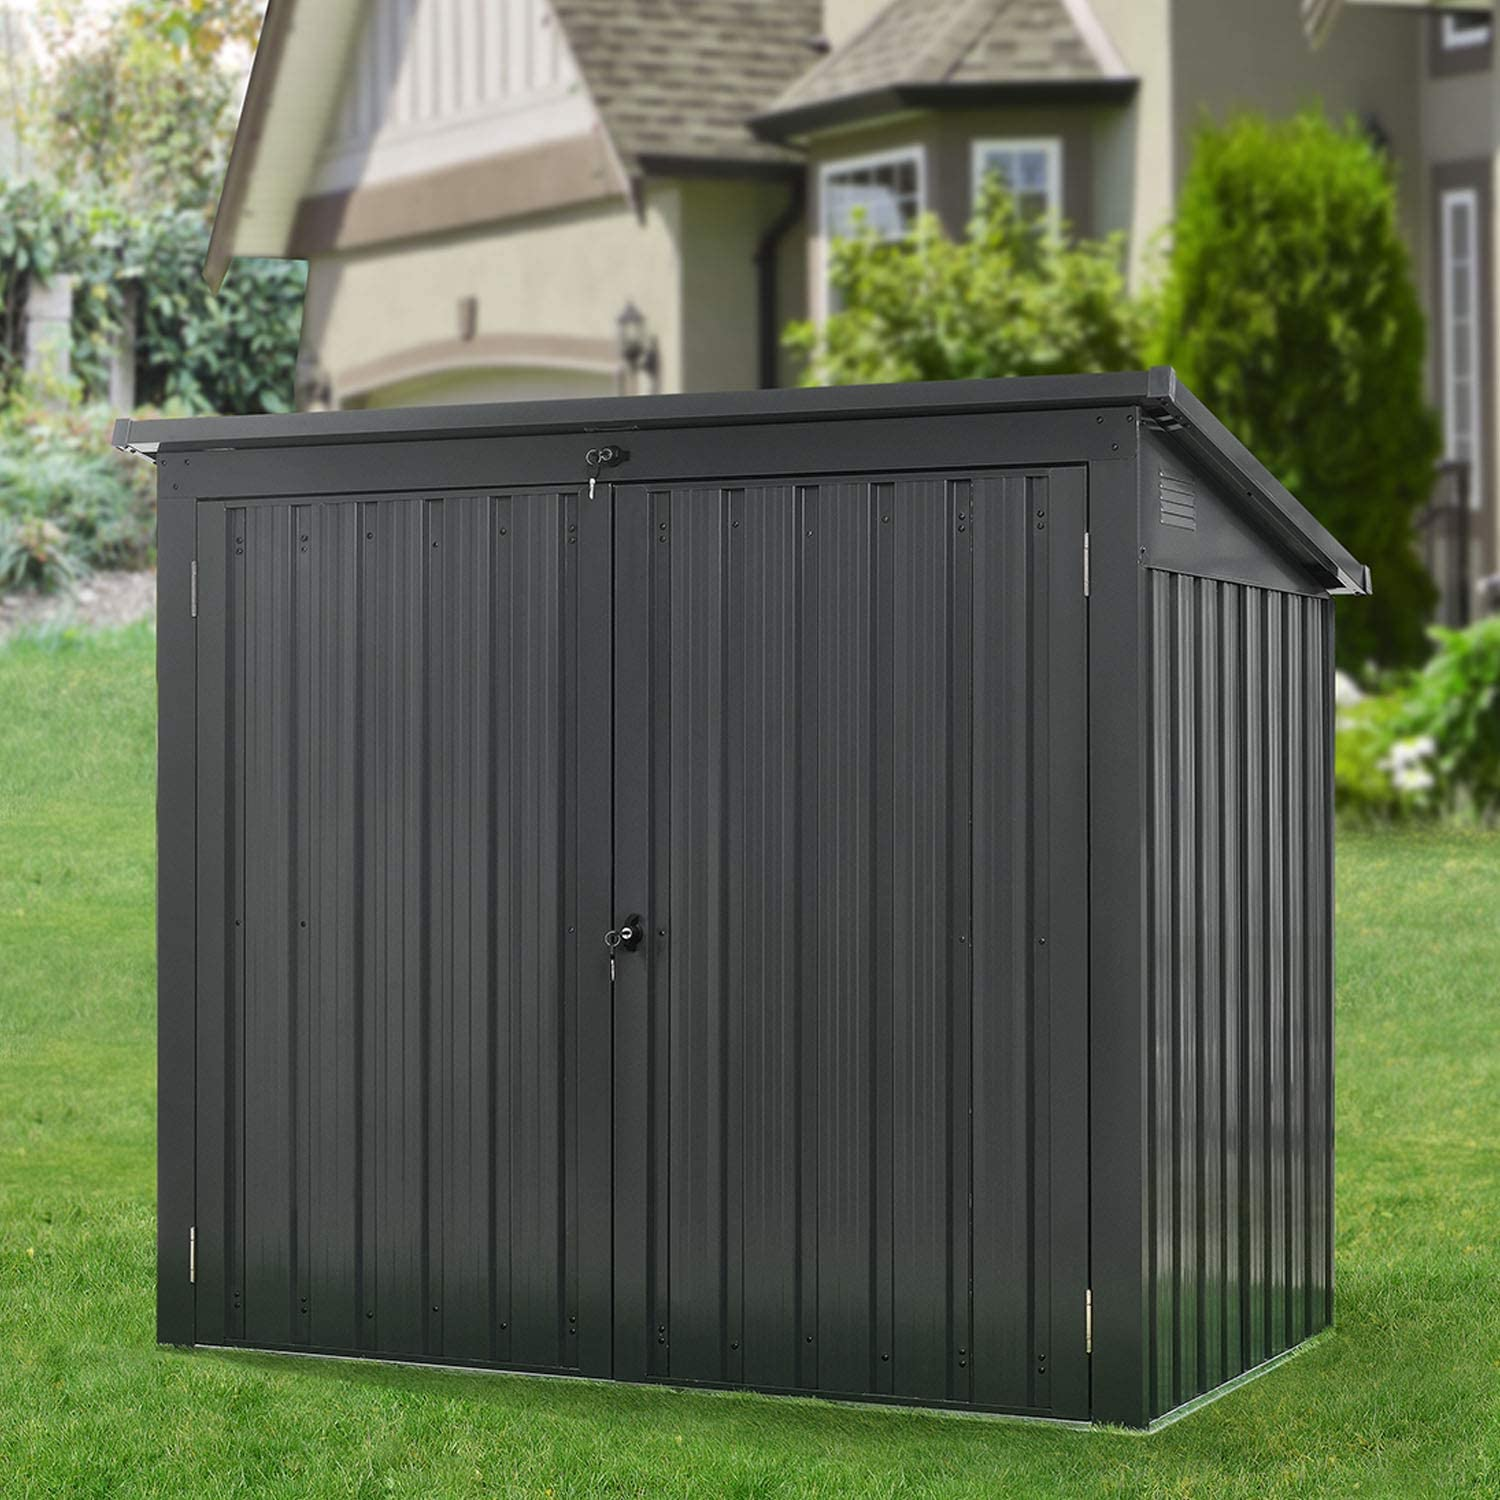 Hanover HANBINSHD-Gry Galvanized Steel Trash and Recyclables Storage Shed with 2-Point Locking System, Dark Gray